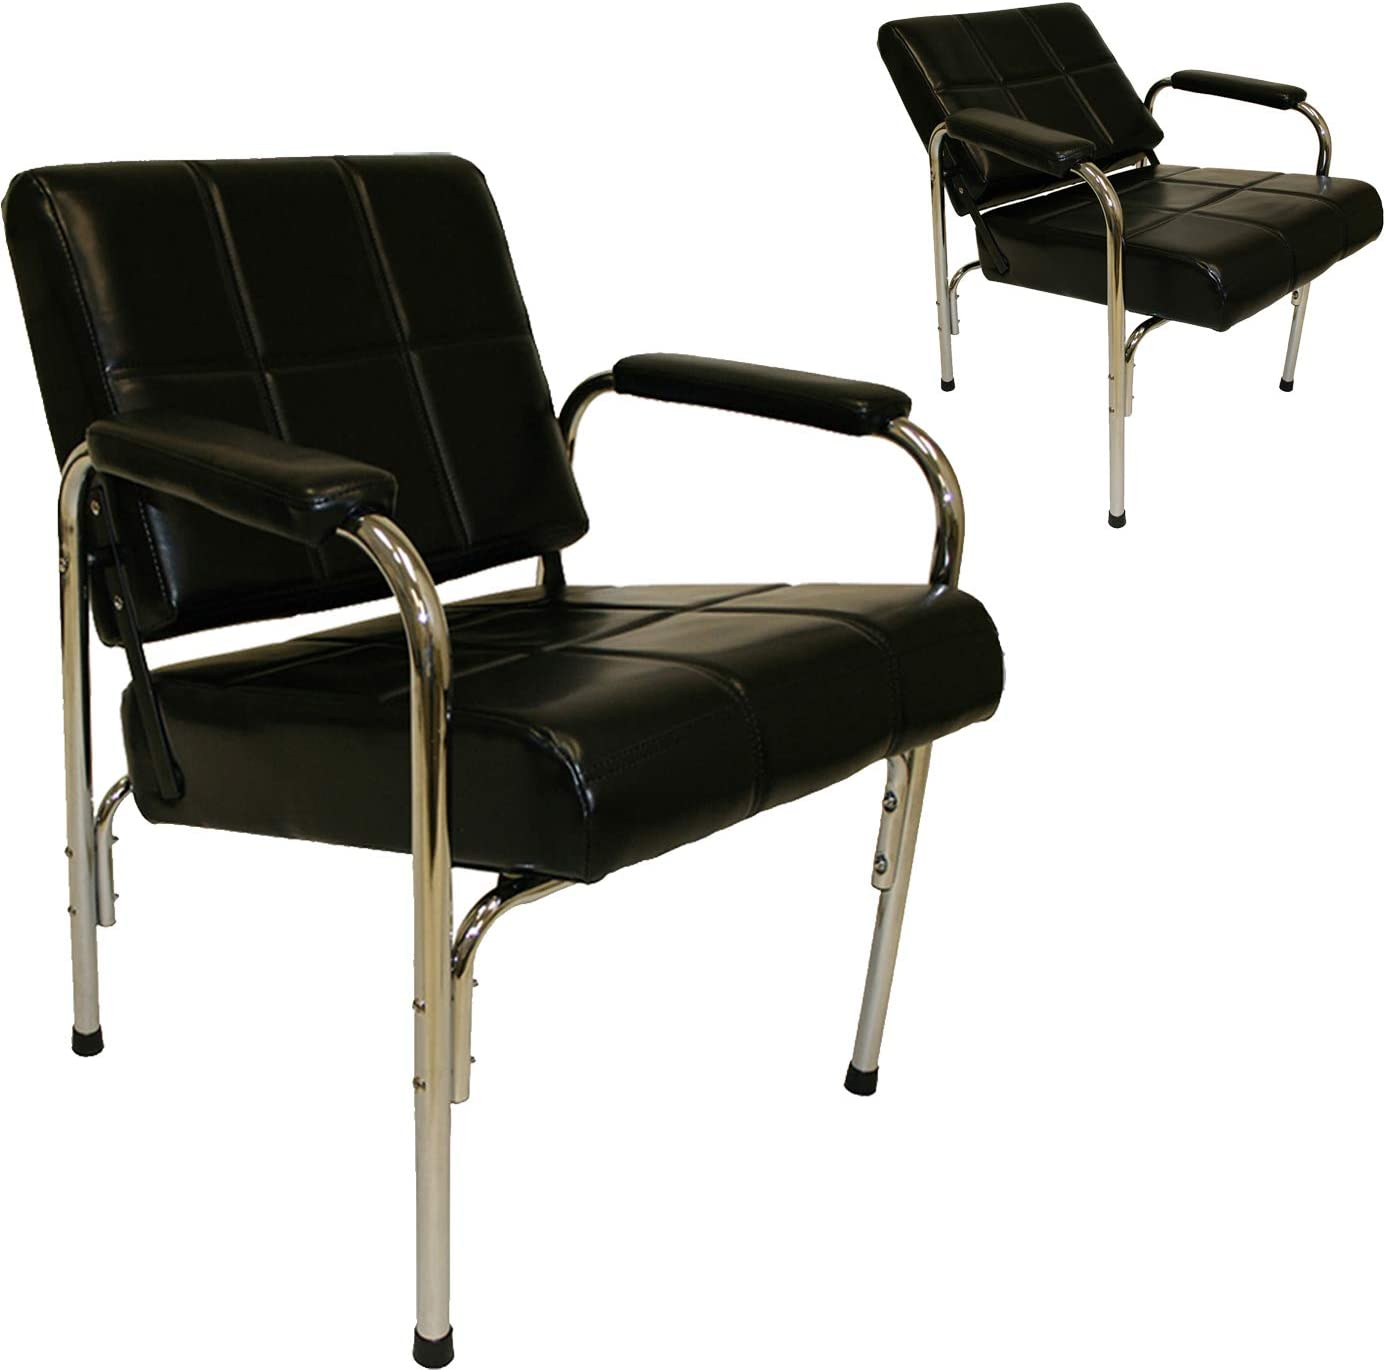 Deal of the week: LCL Beauty Contemporary Automatic Recline Shampoo Chair